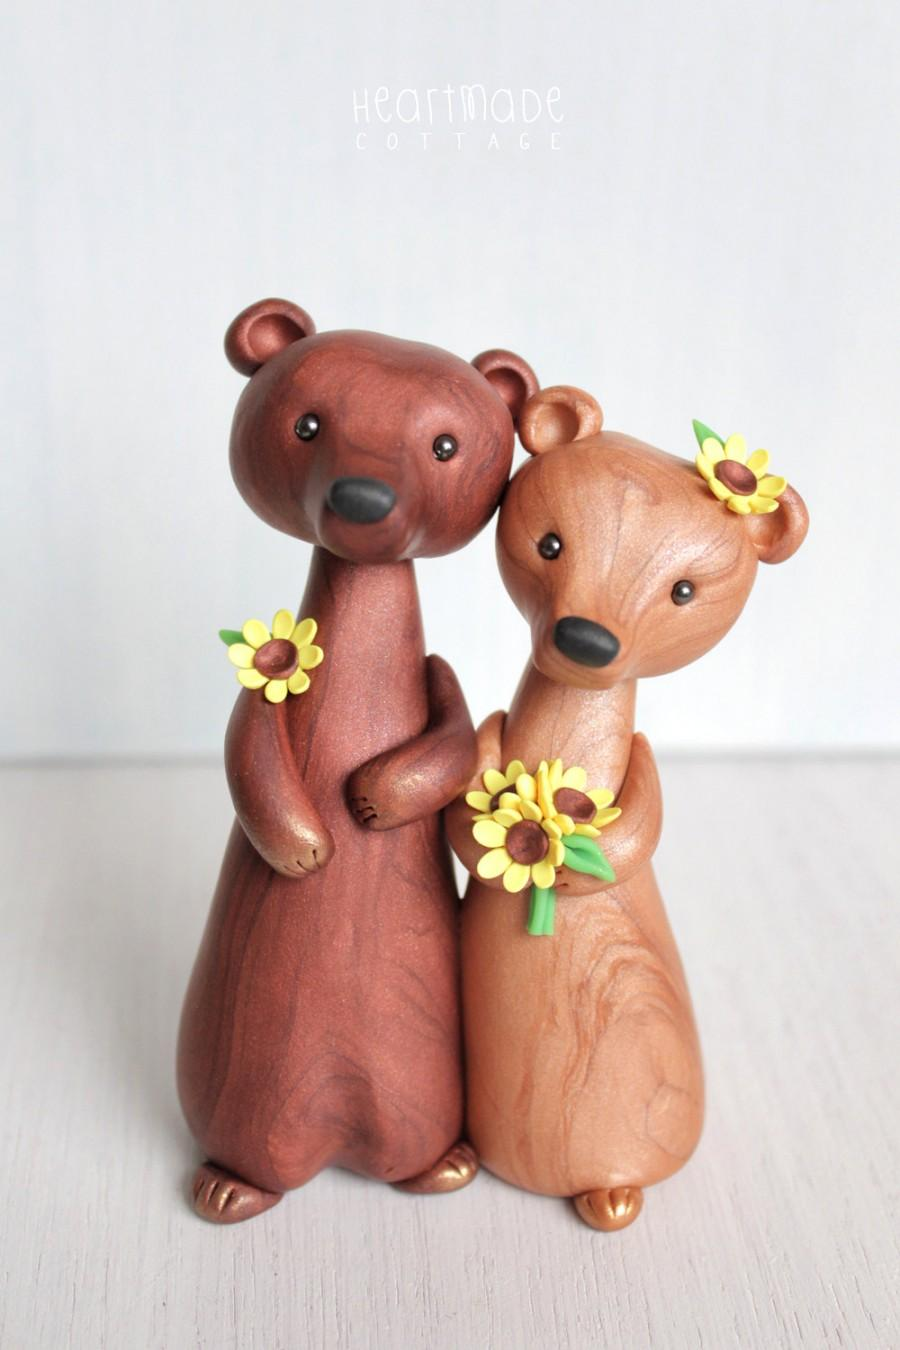 Hochzeit - Personalized Bear Wedding Cake Topper -animal clay cake topper and keepsake for original woodland, rustic and chic wedding theme